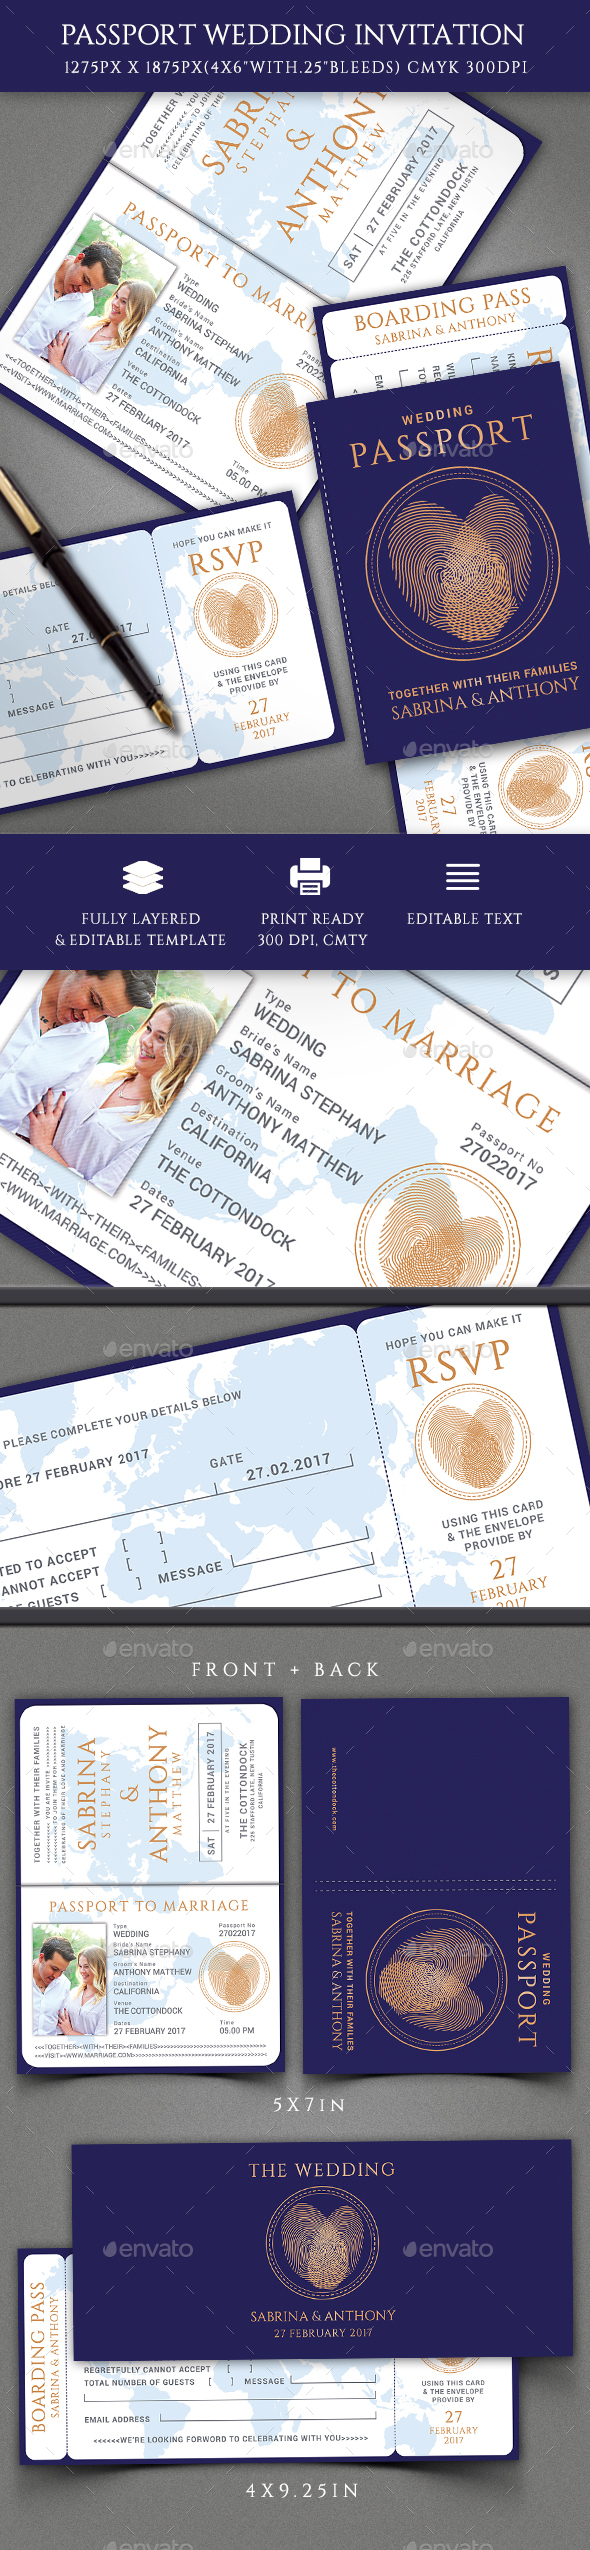 Passport Wedding Invitation - Invitations Cards & Invites